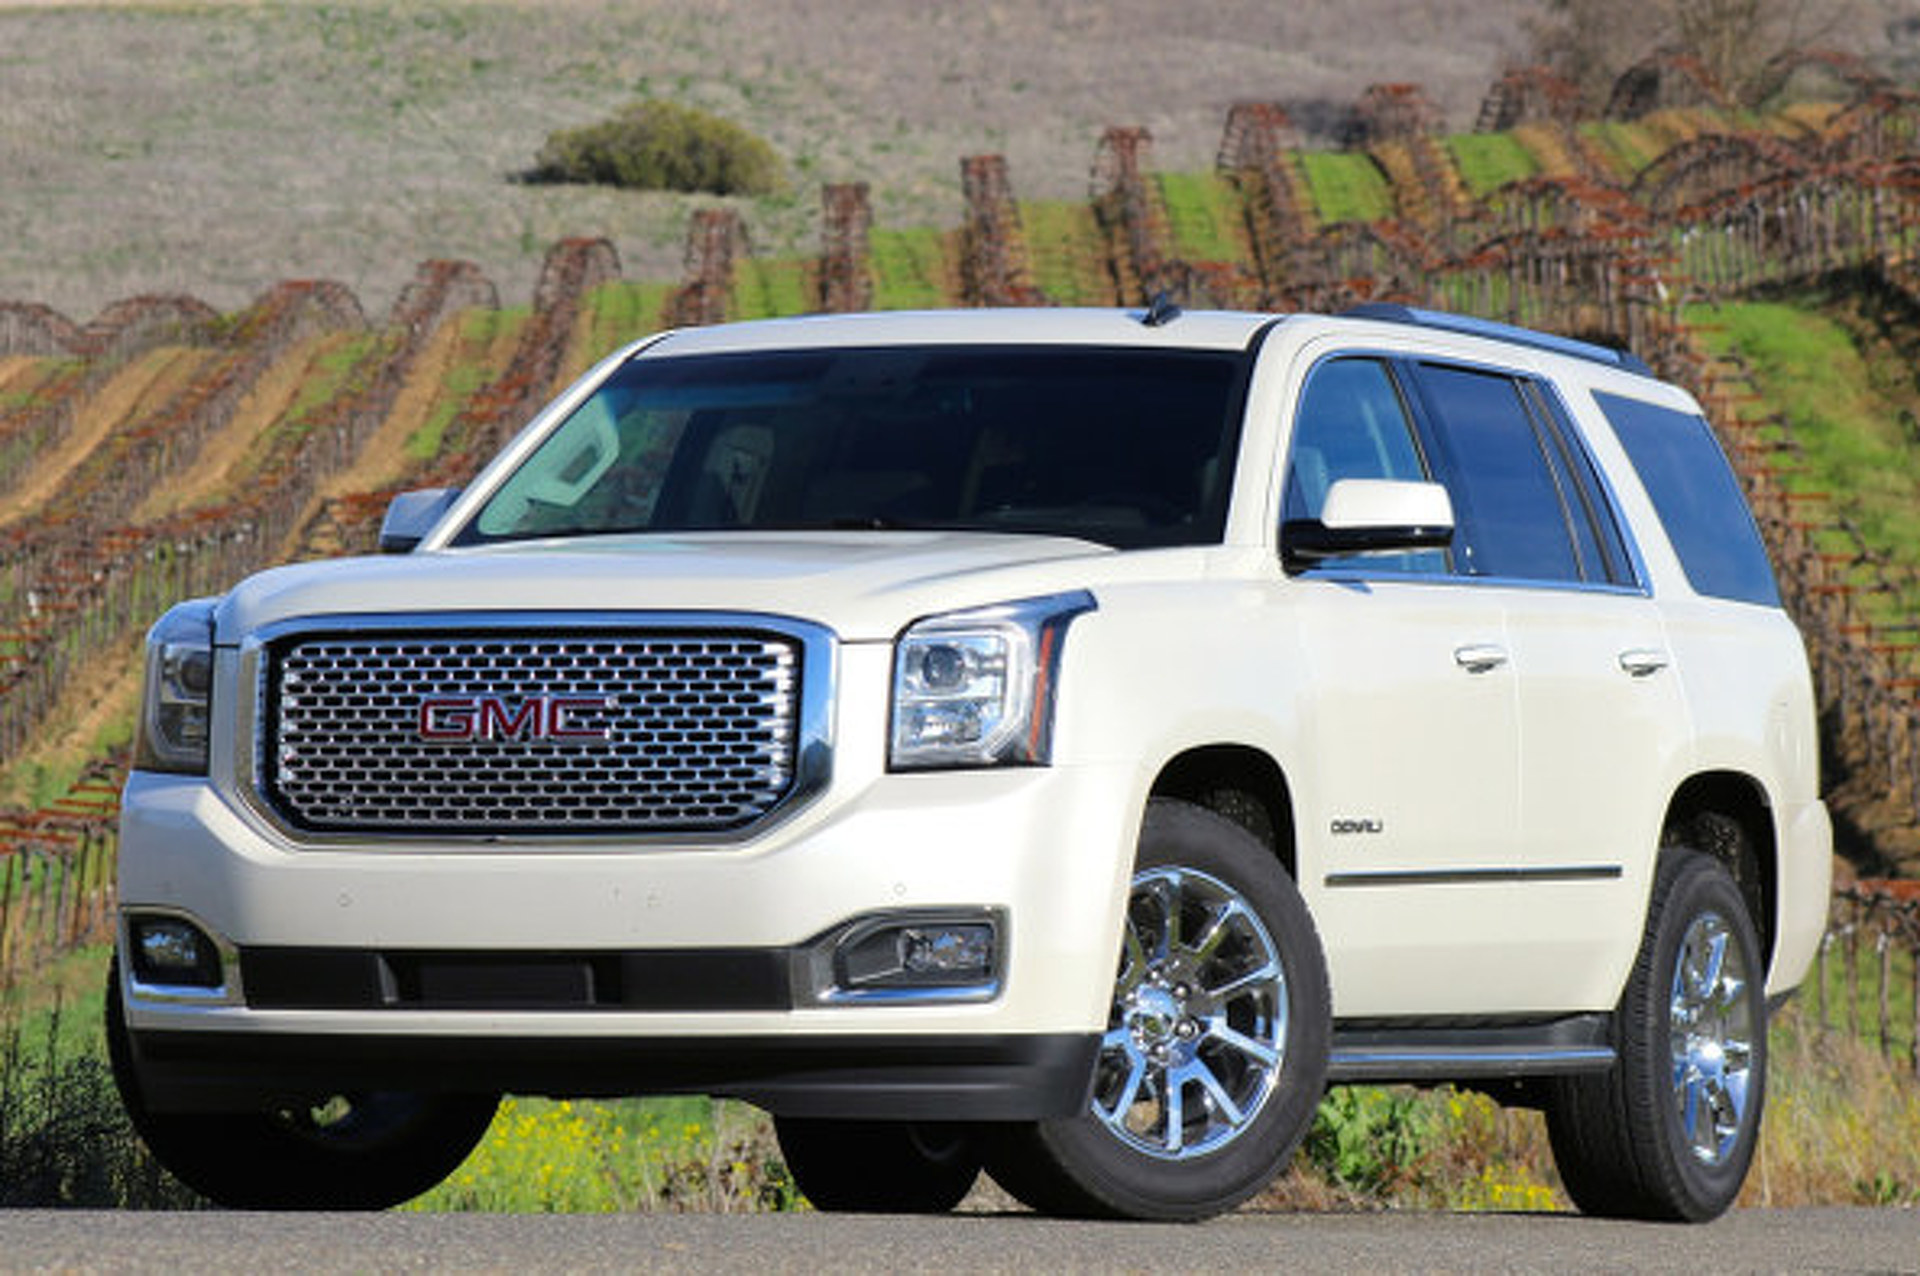 Chevy Tahoe, GMC Yukon: A Pair of High Tech SUVs